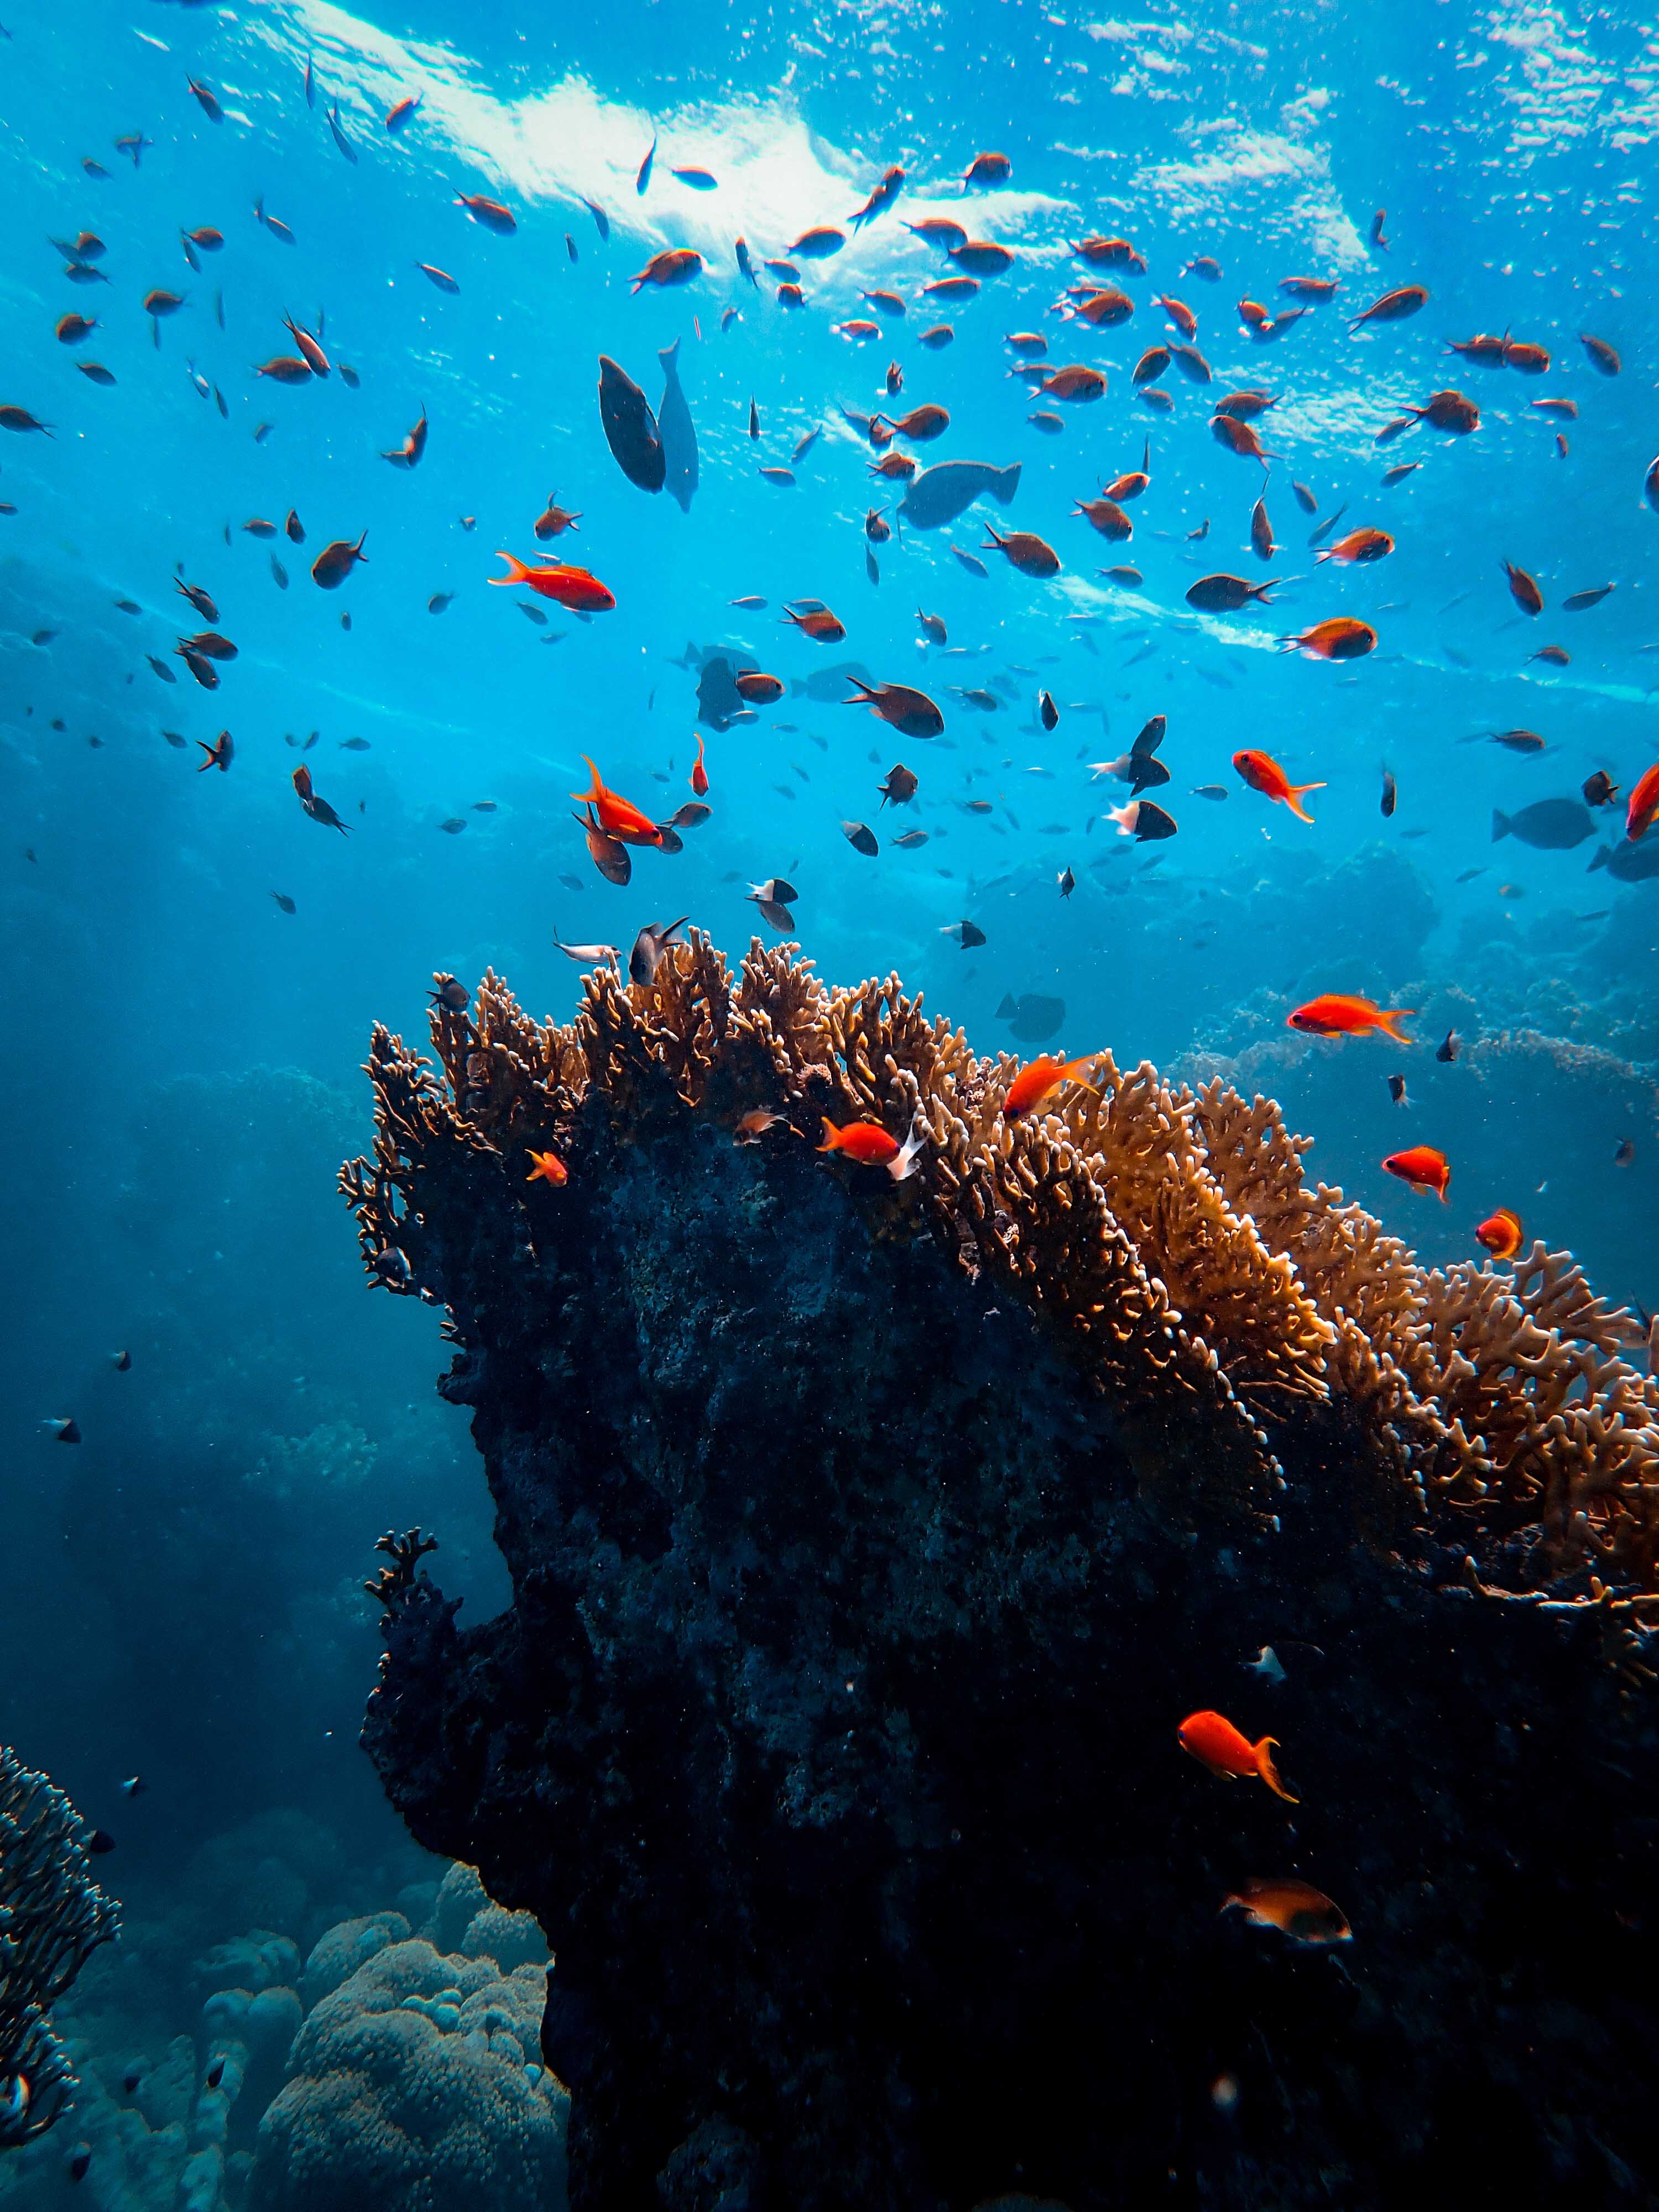 119182 download wallpaper Animals, Seaweed, Algae, Underwater World, Fishes, Coral screensavers and pictures for free